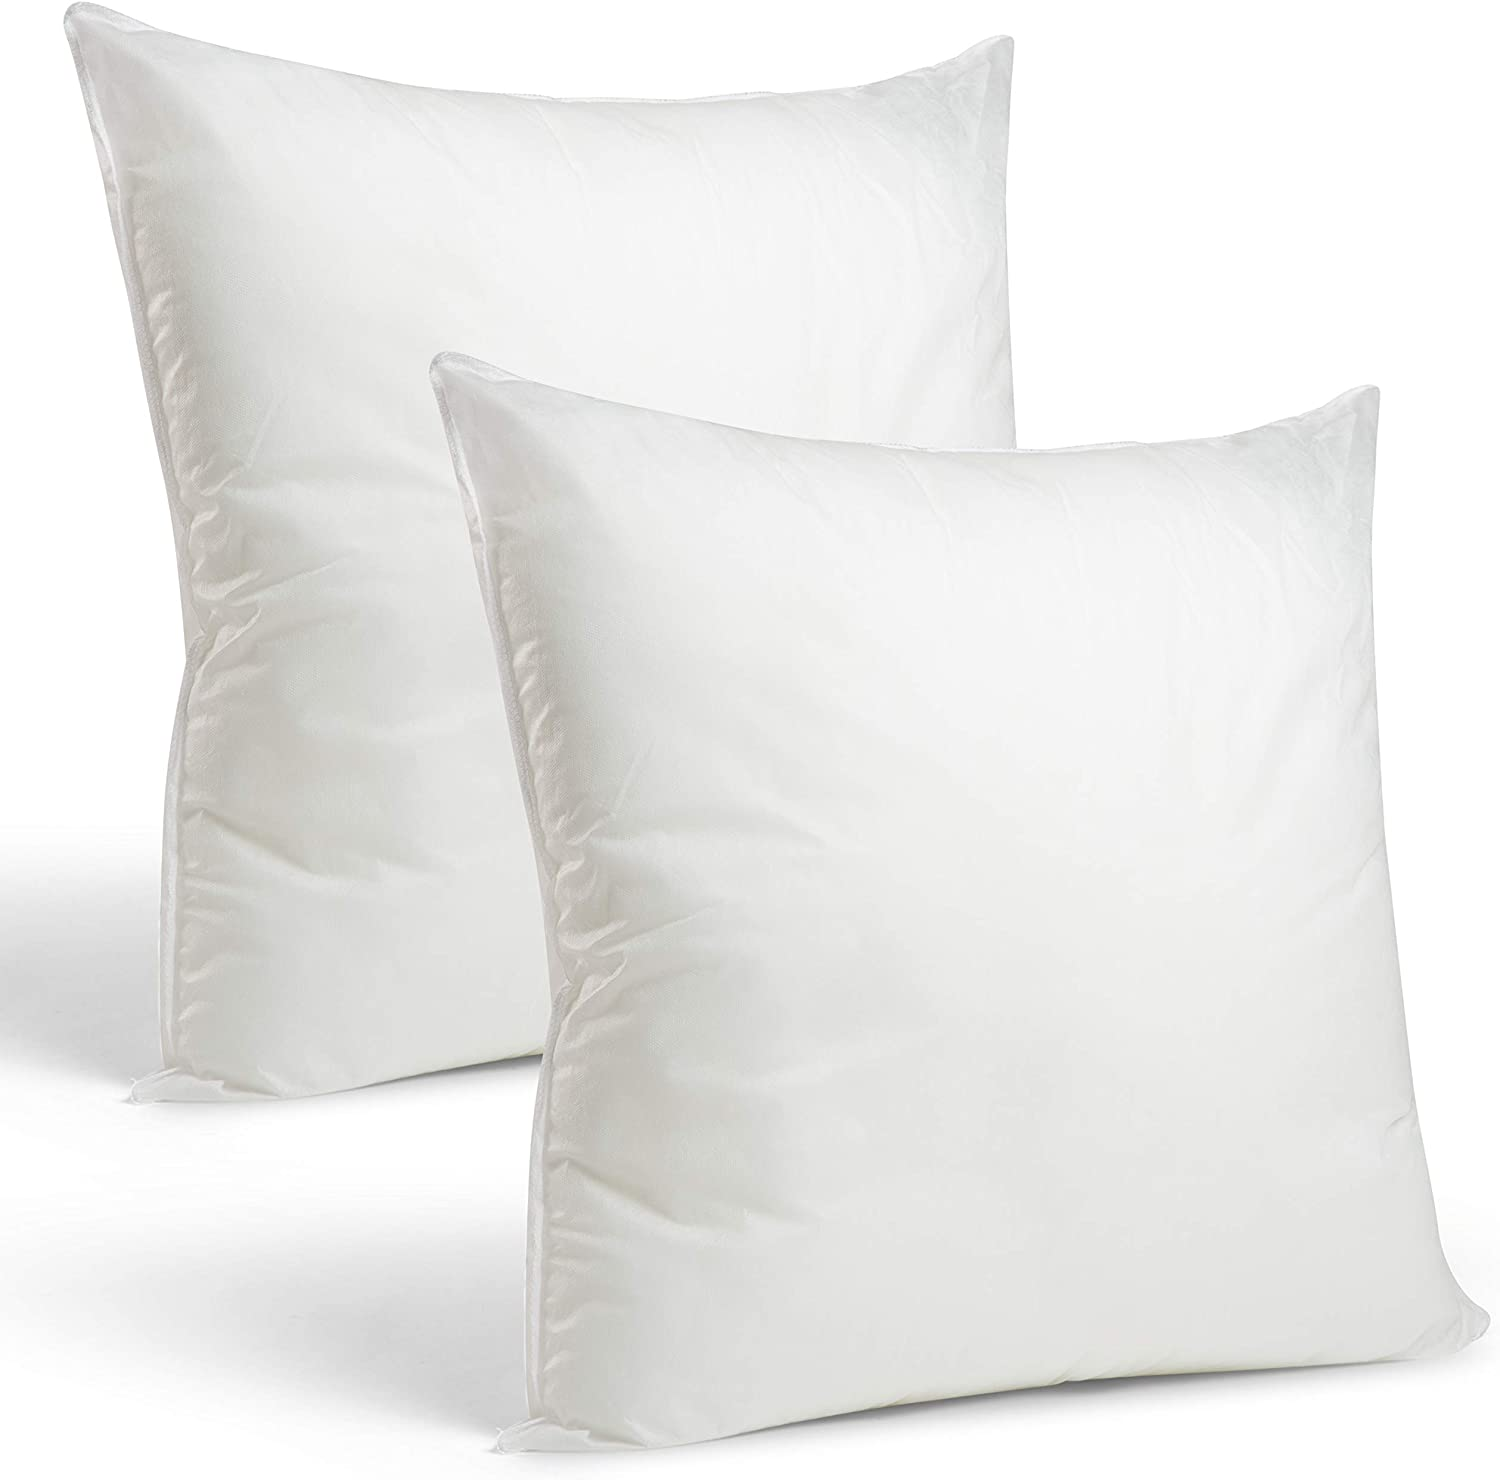 Throw Pillow Insert Square Euro Pillow Stuffing Made in USA Form Insert Set of 4